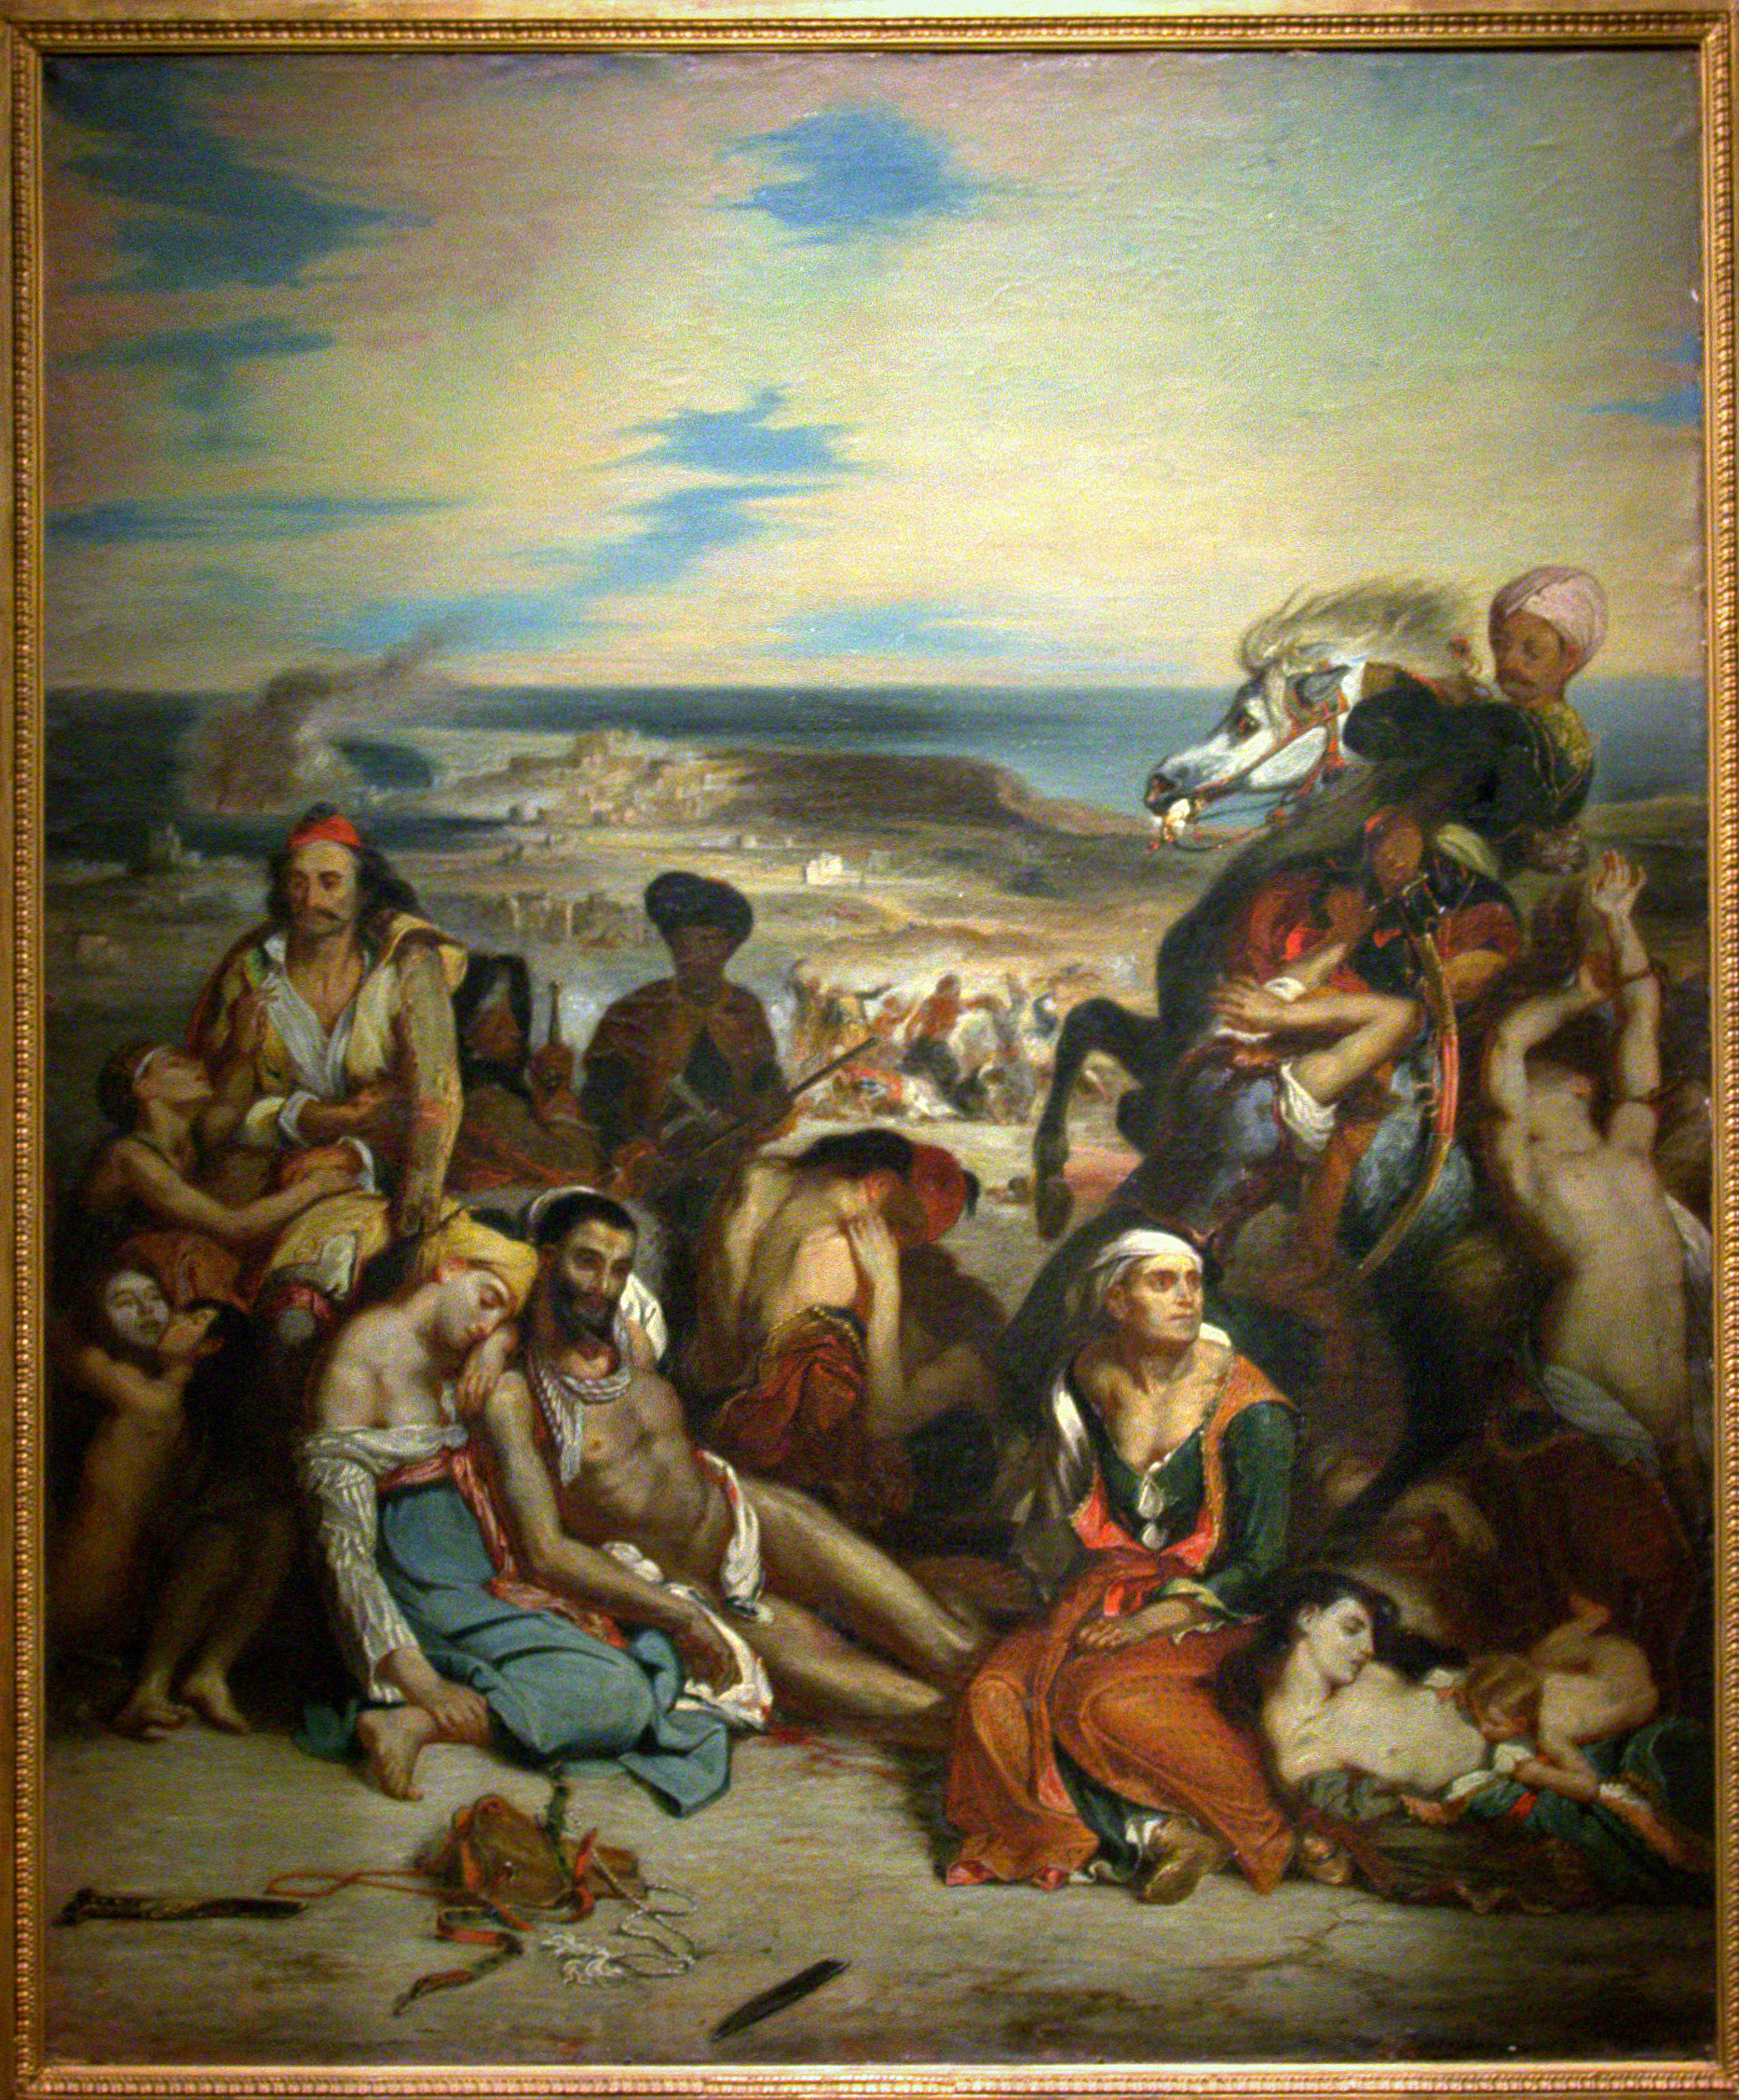 The Massacre at Chios (Delacroix, 1824)